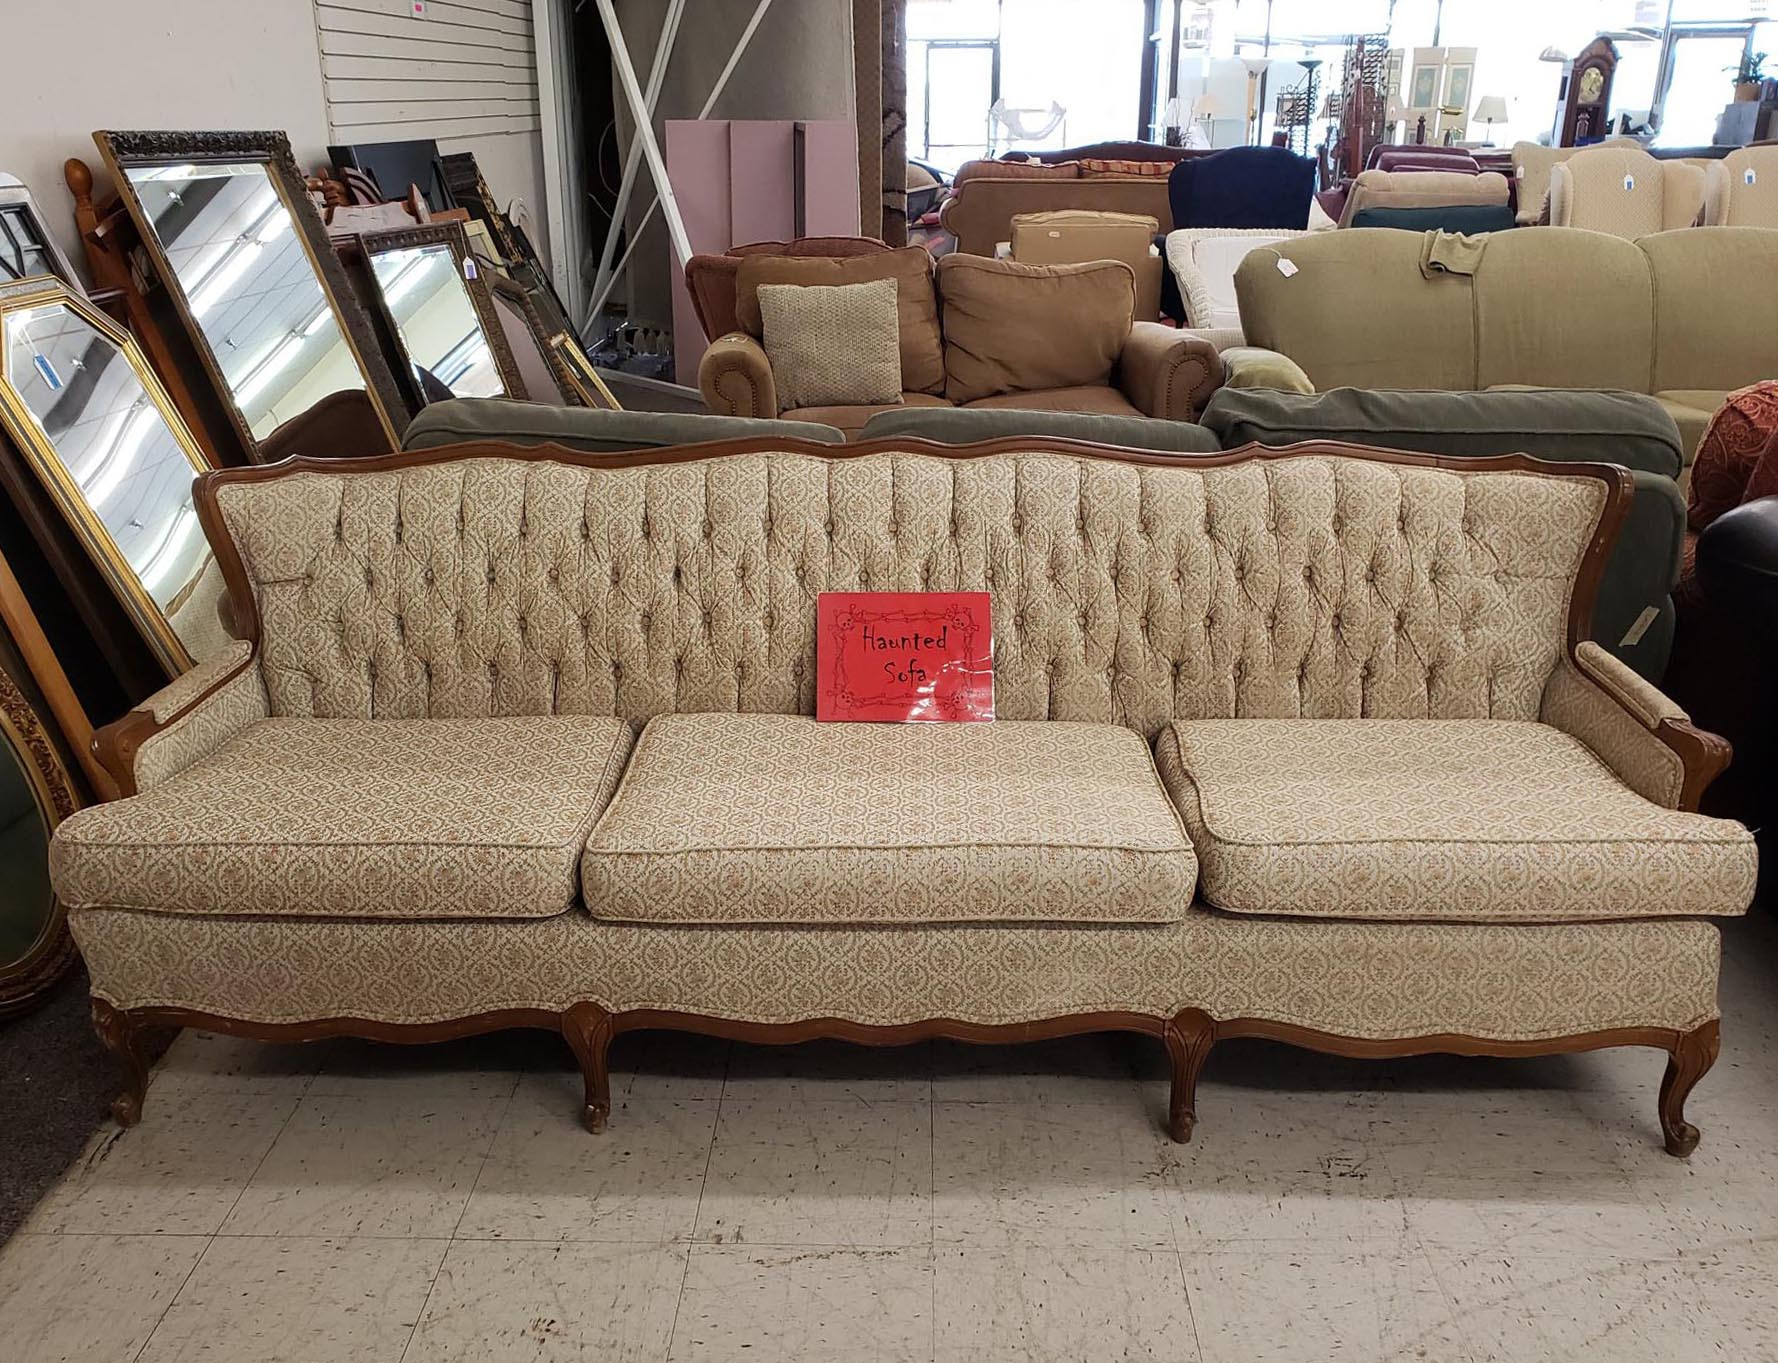 The infamous haunted couch in Waco, Texas. ( Consignment Furniture Showroom )